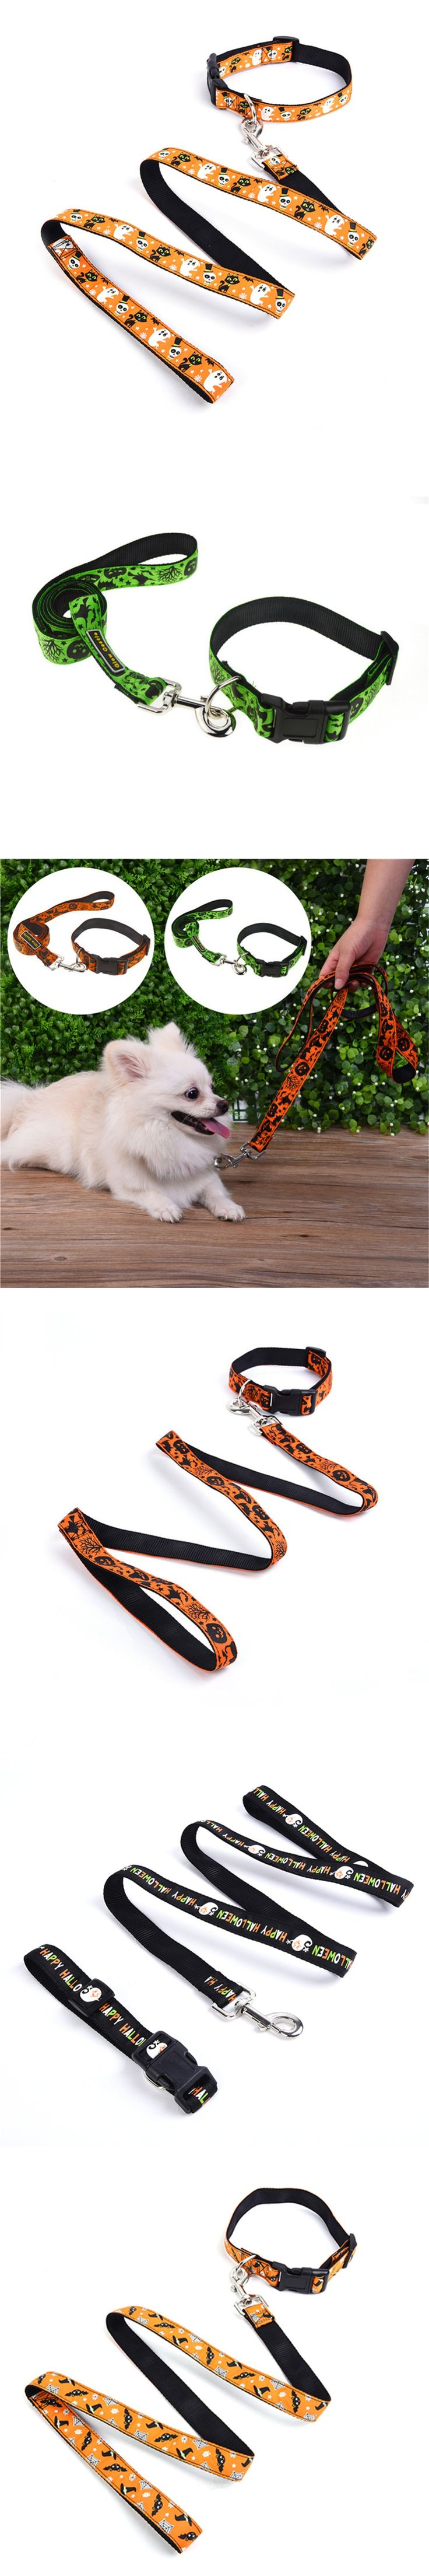 Festival Halloween gift pet Collar Traction Rope Suits for Dogs multi patterns Pet dog Connector belt cat puppy collar leashes